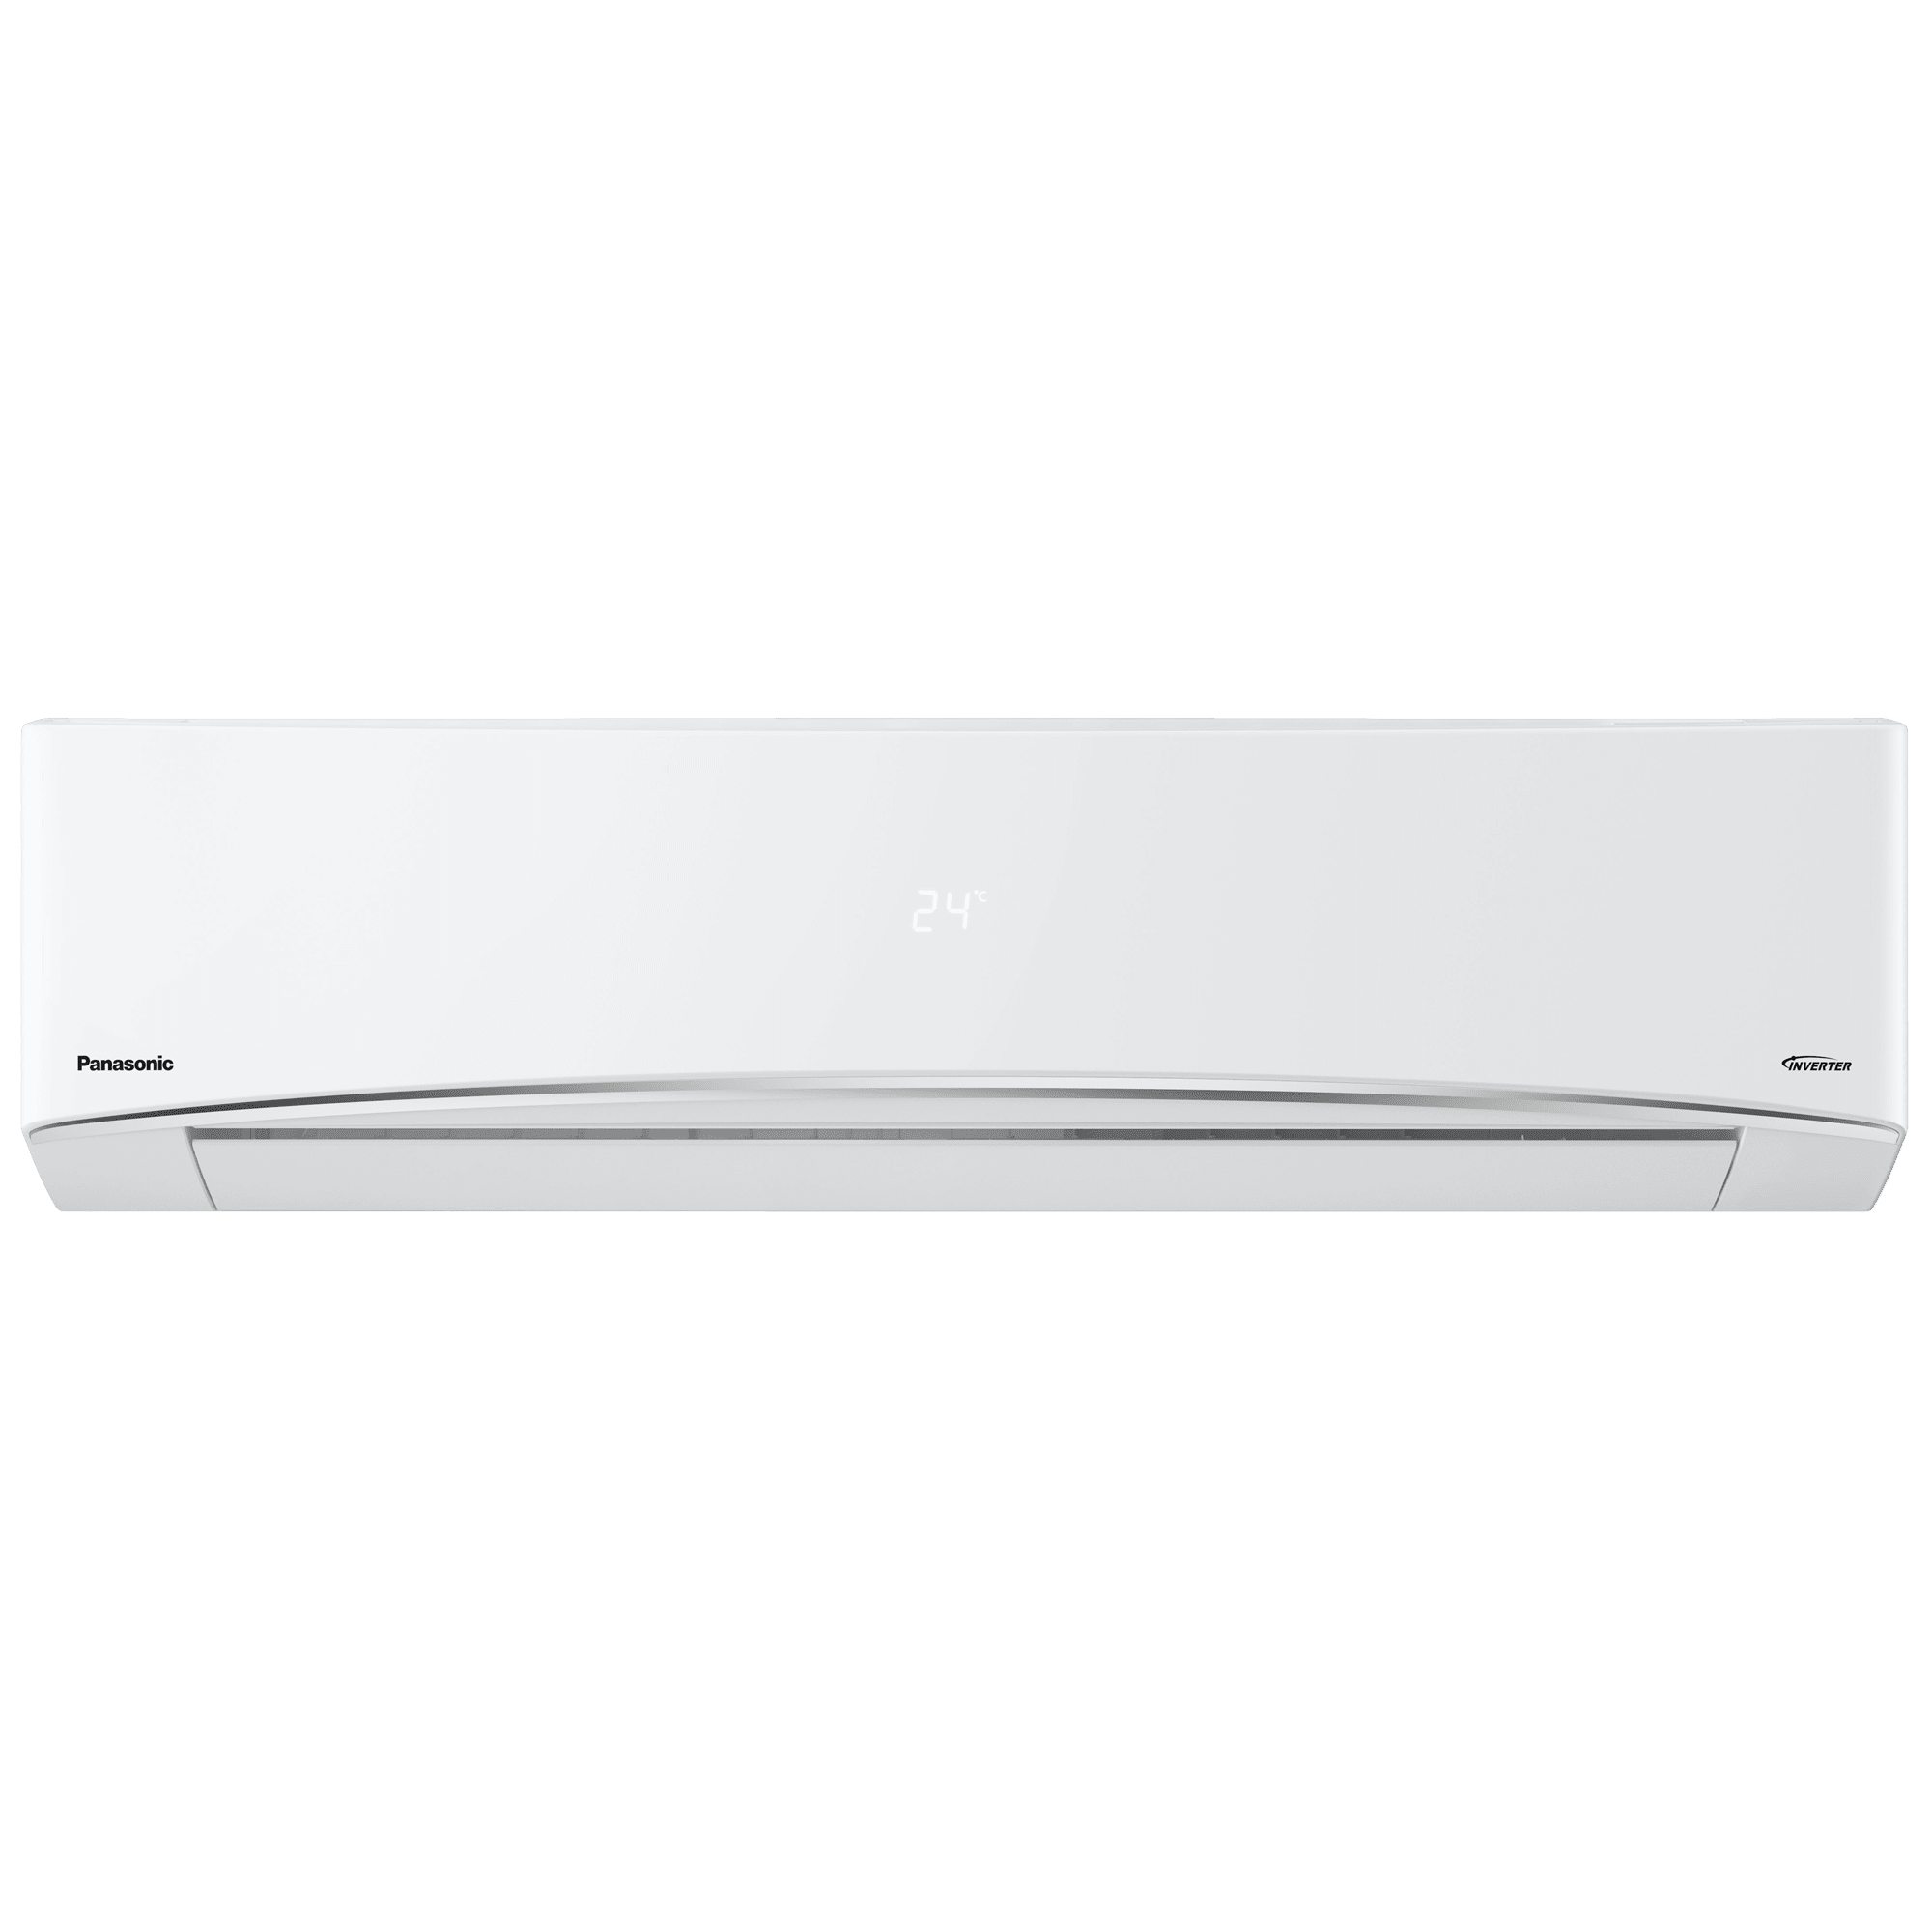 Panasonic KU 1.5 Ton 3 Star Inverter Split AC (Air Purification Function, Copper Condenser, CS/CU-KU18XKYF1, White)